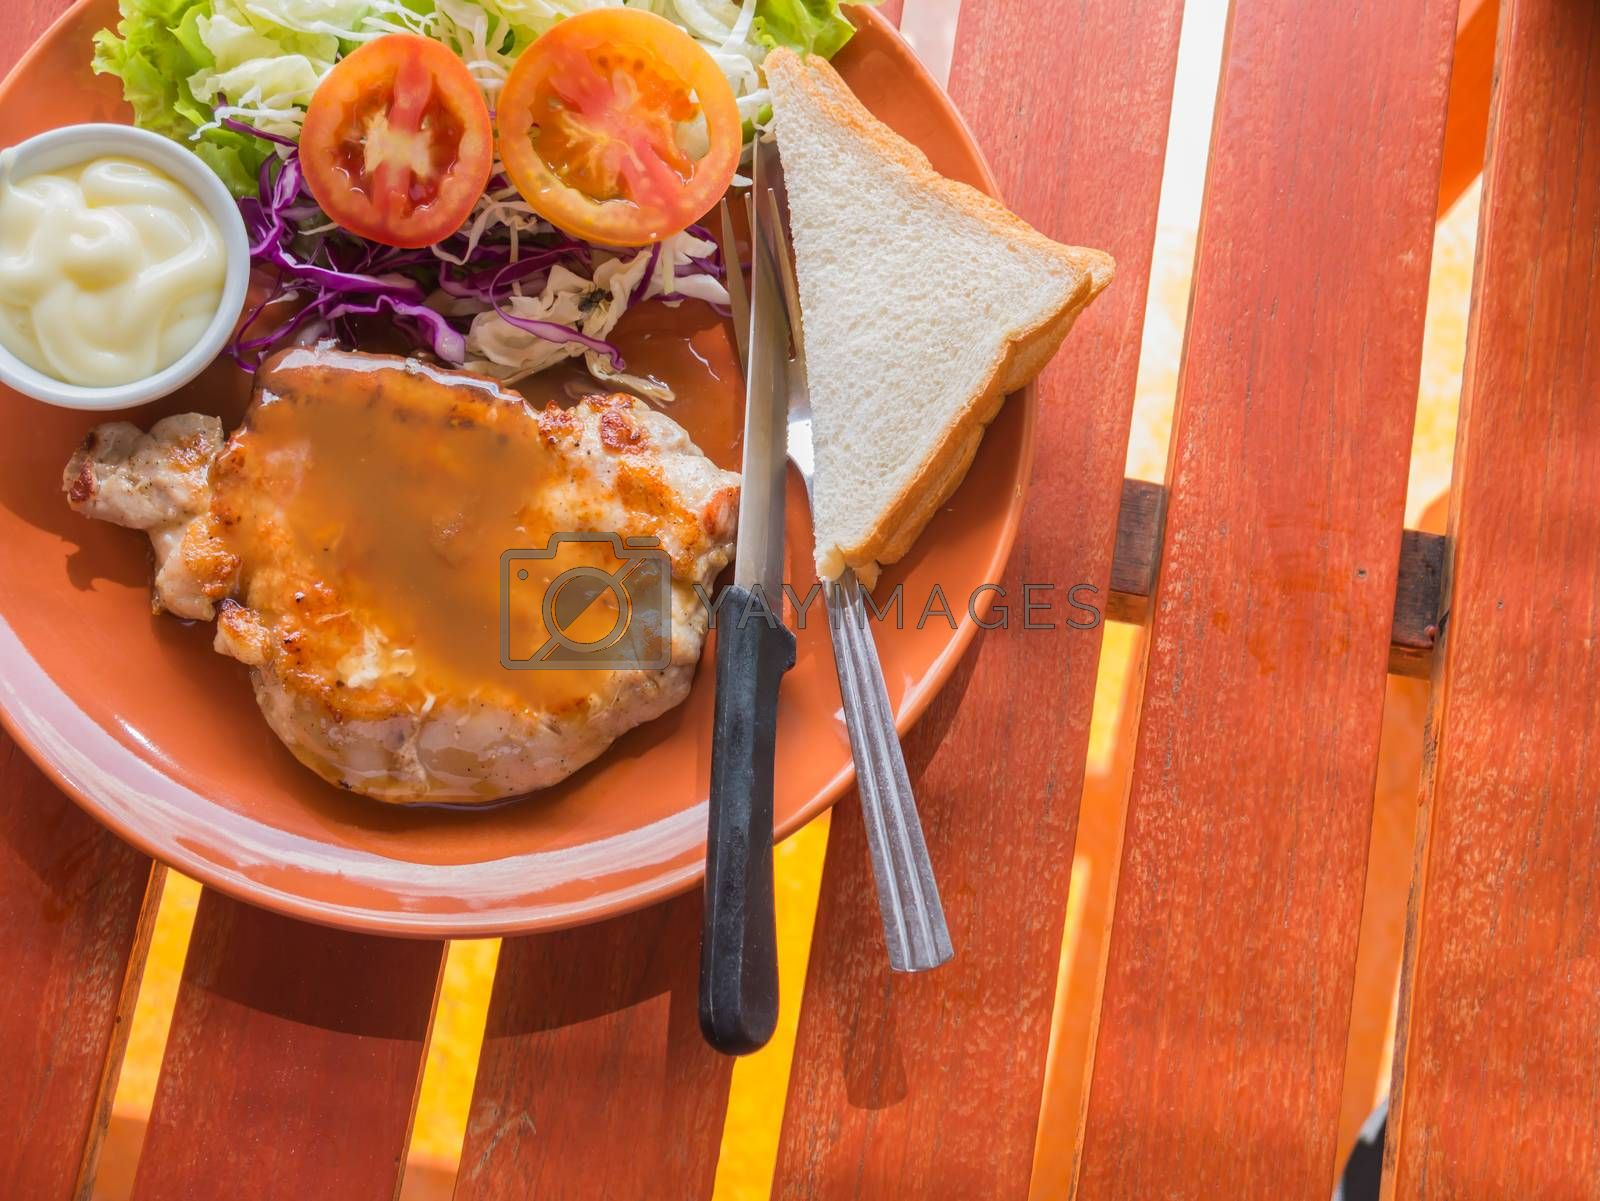 Royalty free image of Grilled steak and vegetable salad by nikky1972